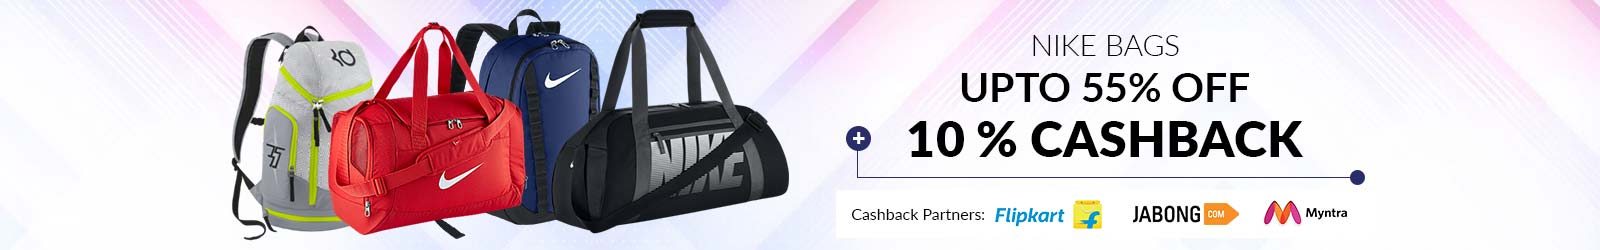 4508d7b6803f98 Nike Bags Price List India, Offers: 55% Discount + 10% Cashback, 2019